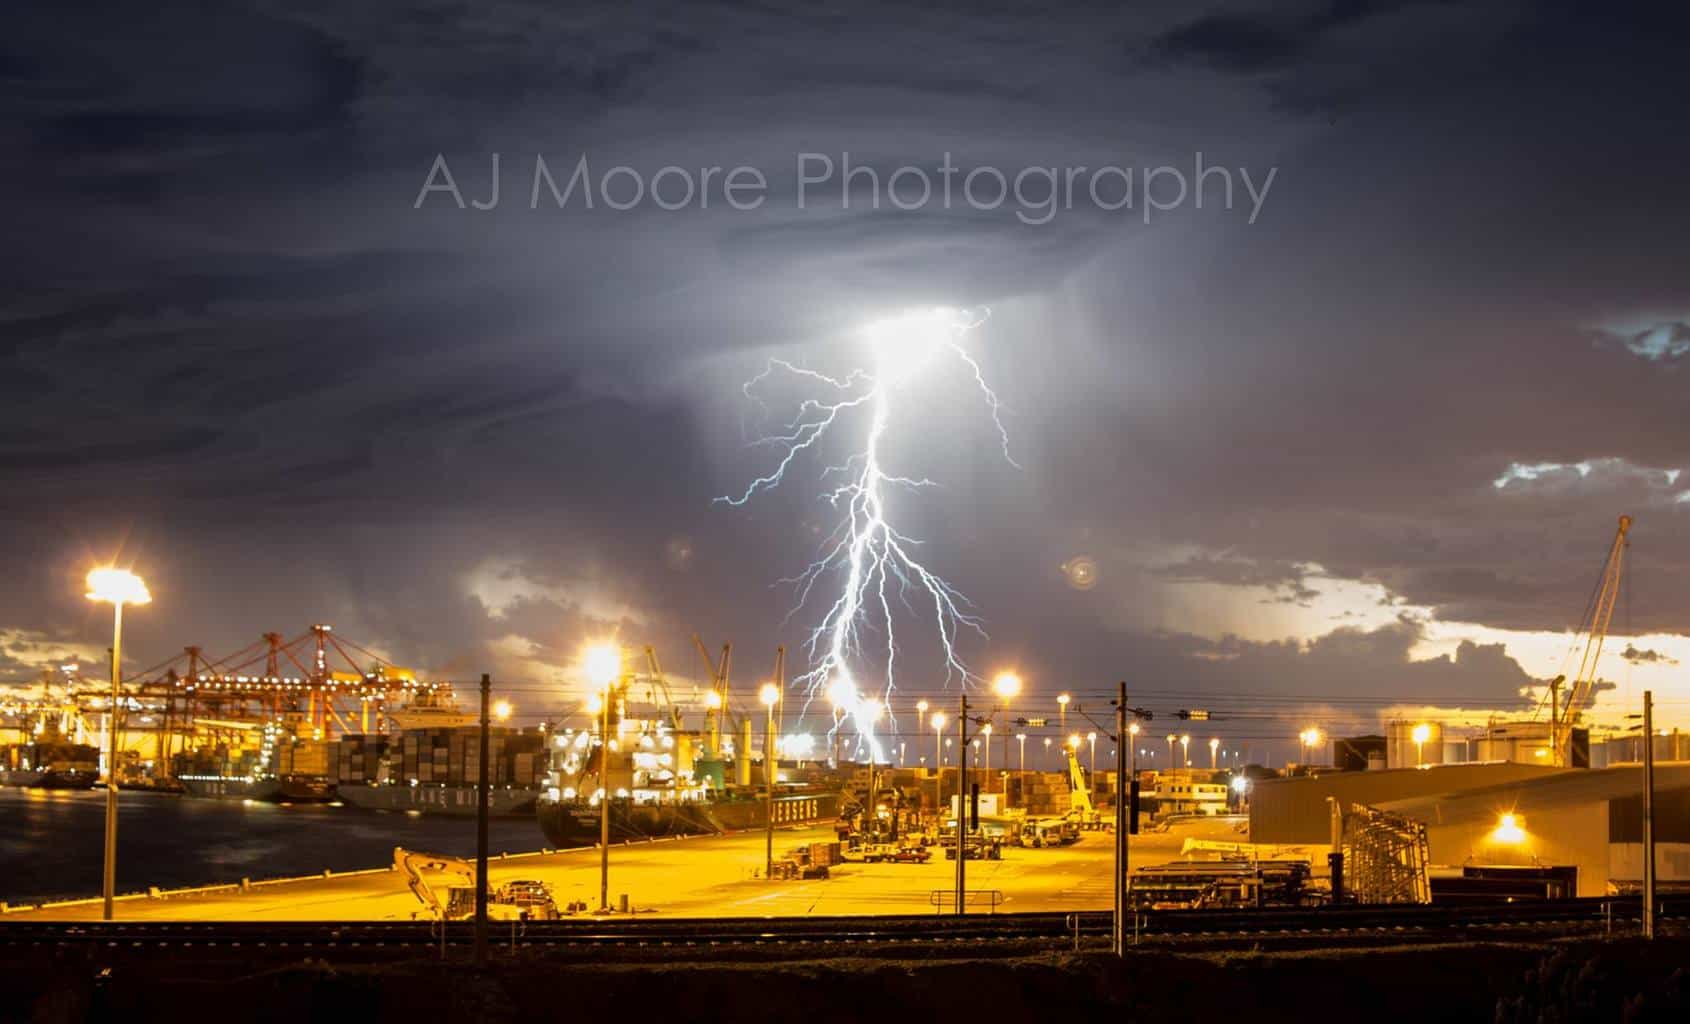 Storm passing over Fremantle port, Western Australia a few hours ago. Taken from our balcony. Broken my thunderstorm drought, finally!